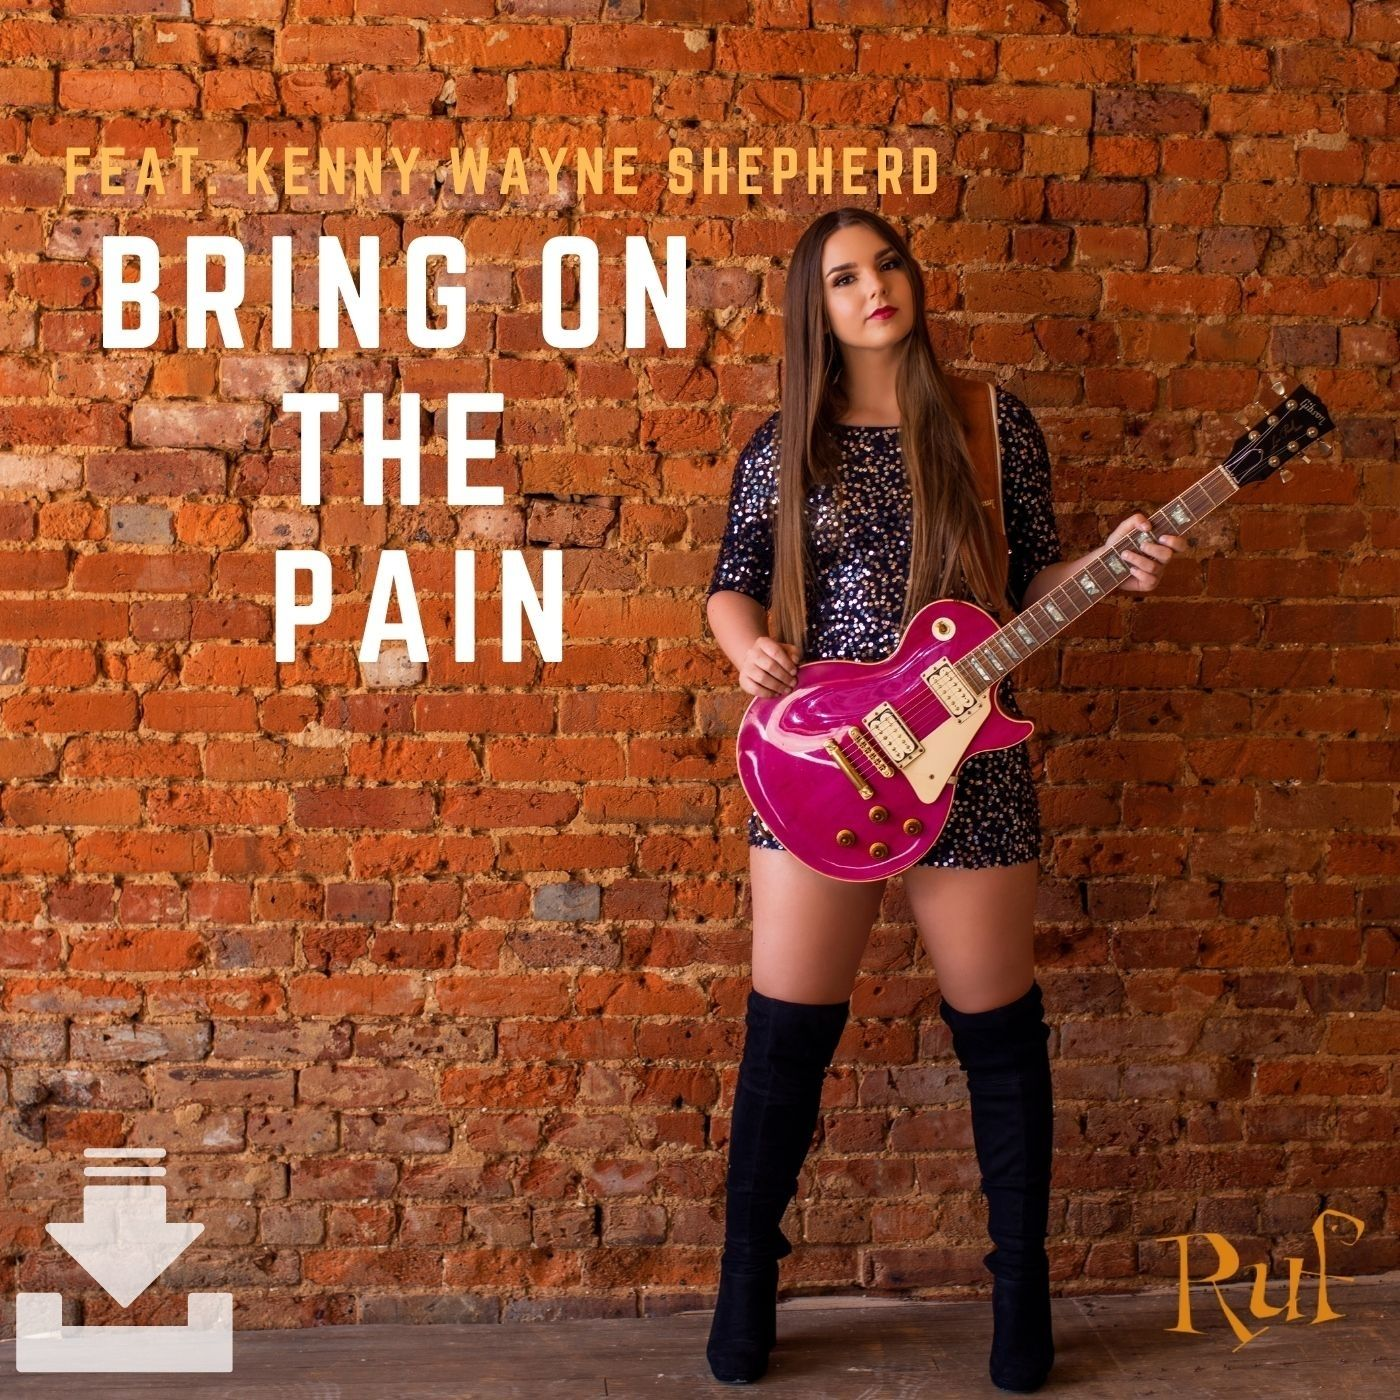 Bring On The Pain - Digital Single Download